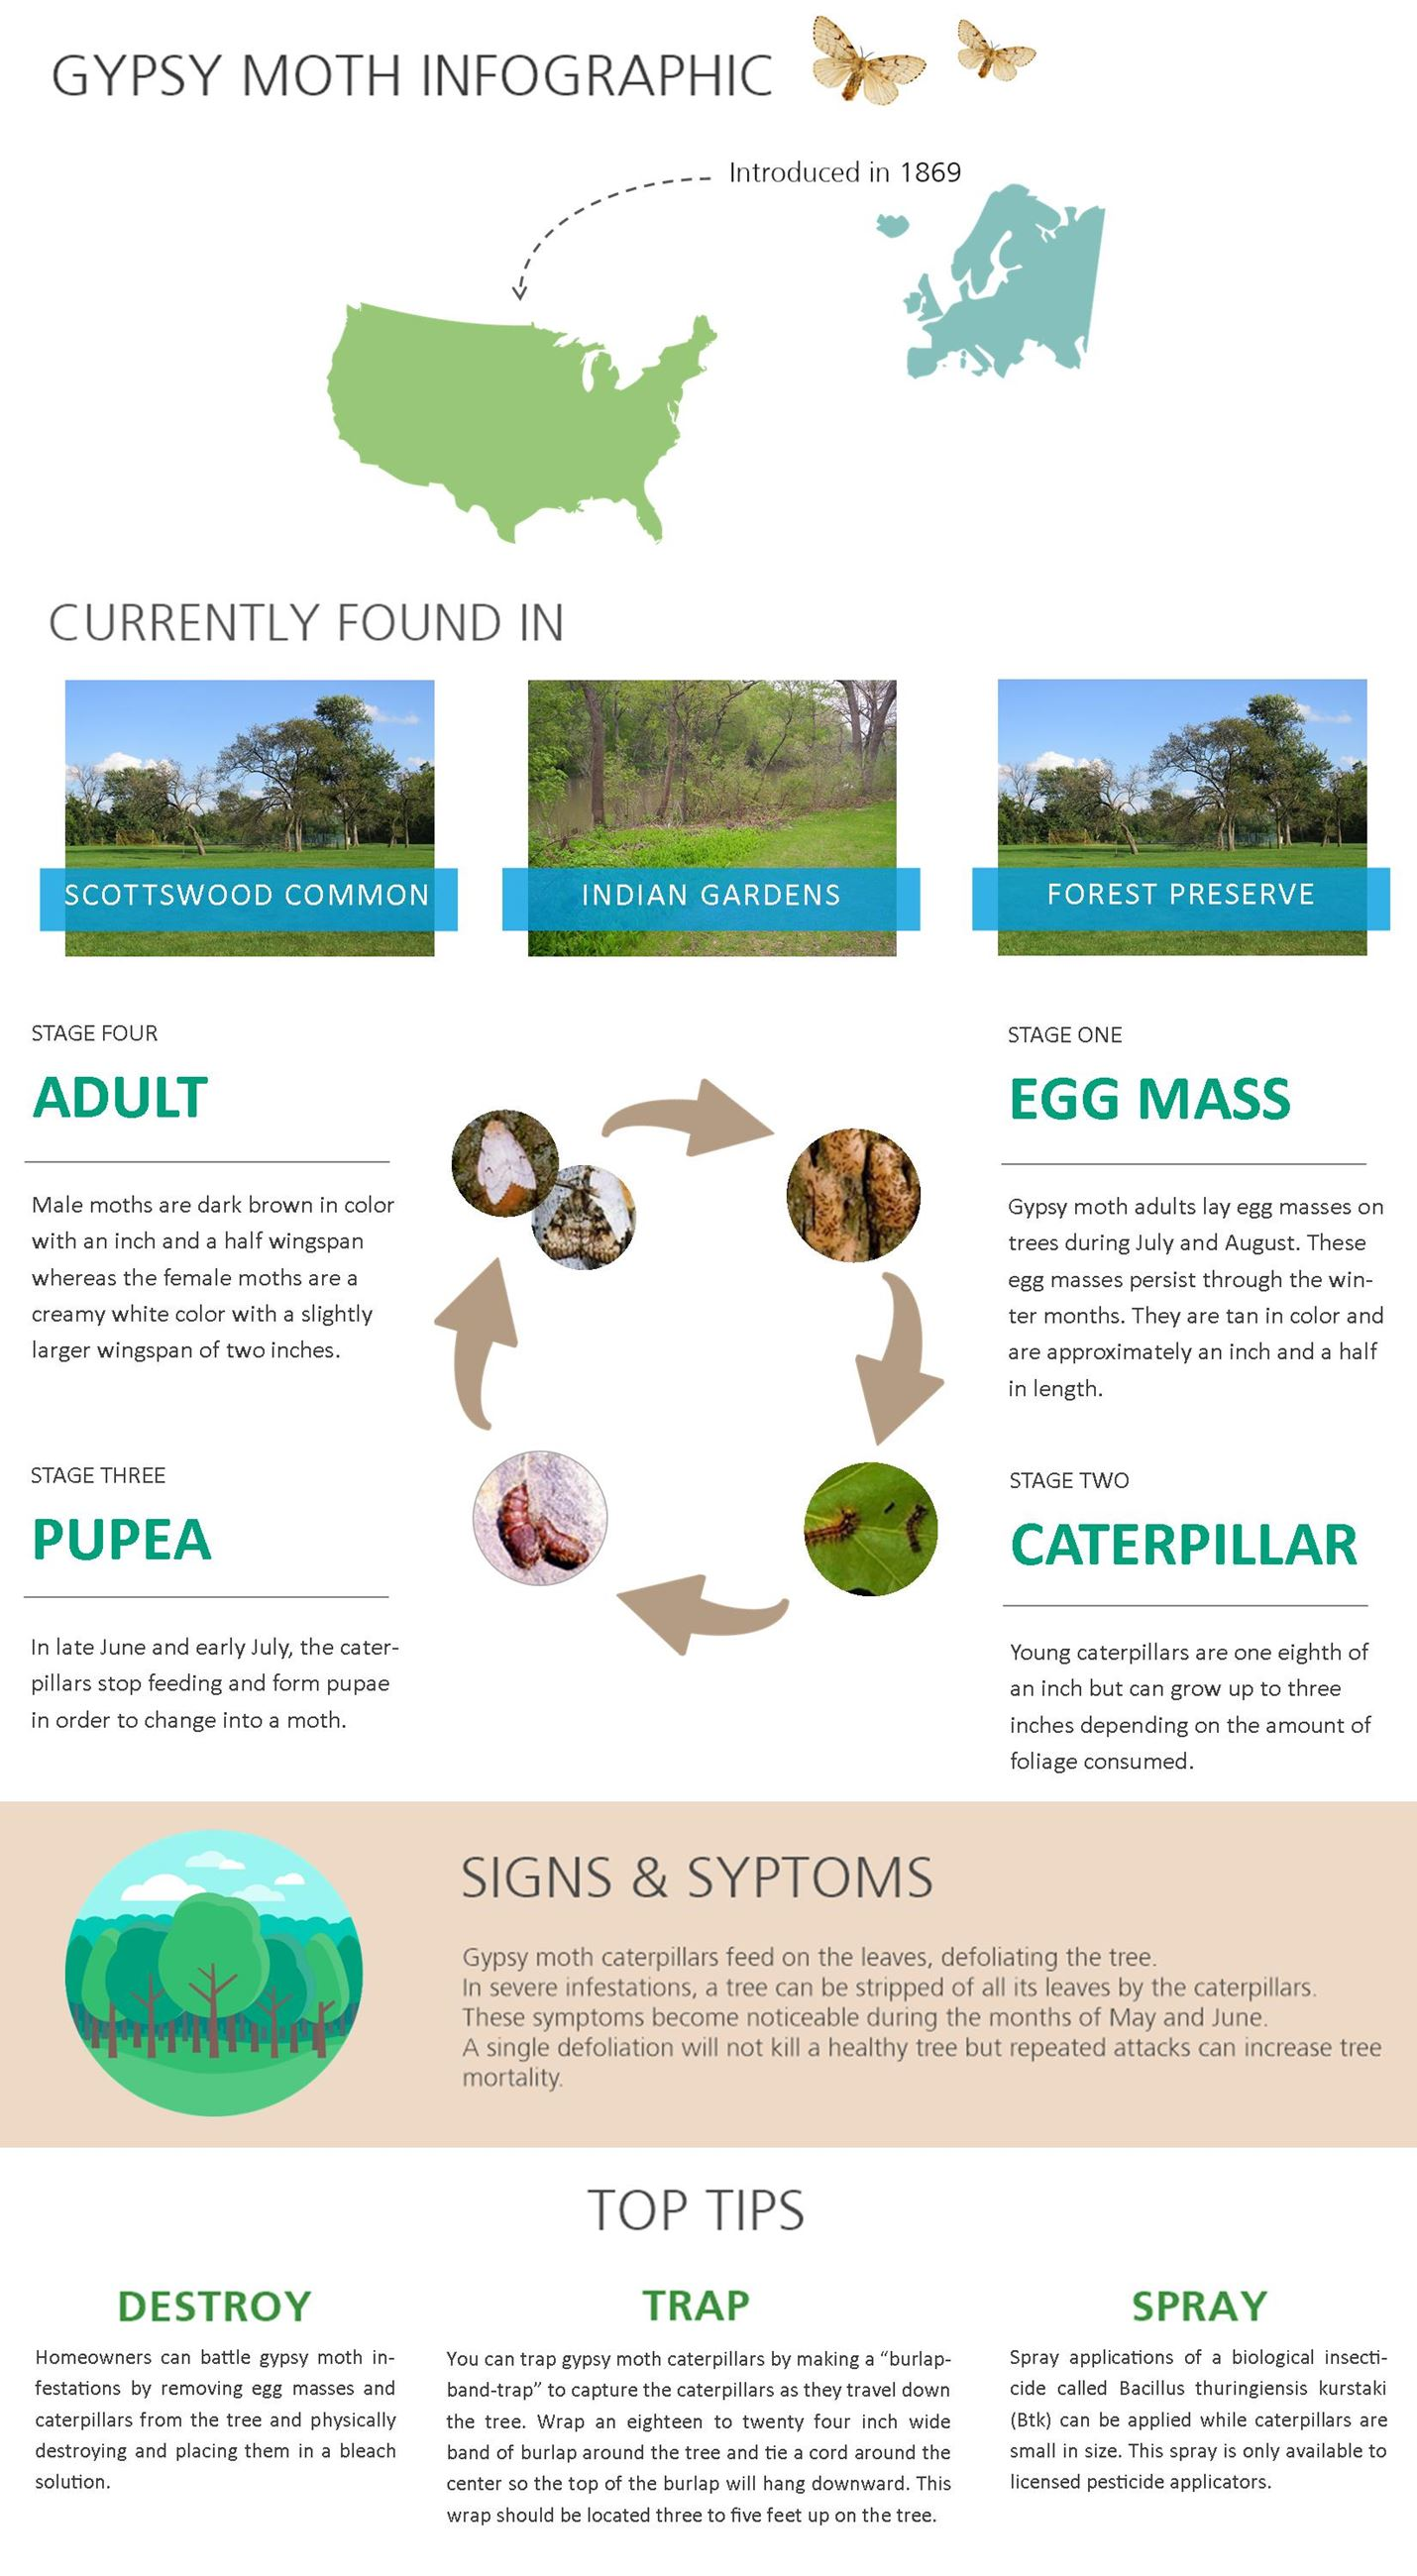 Gypsy Moth Infographic